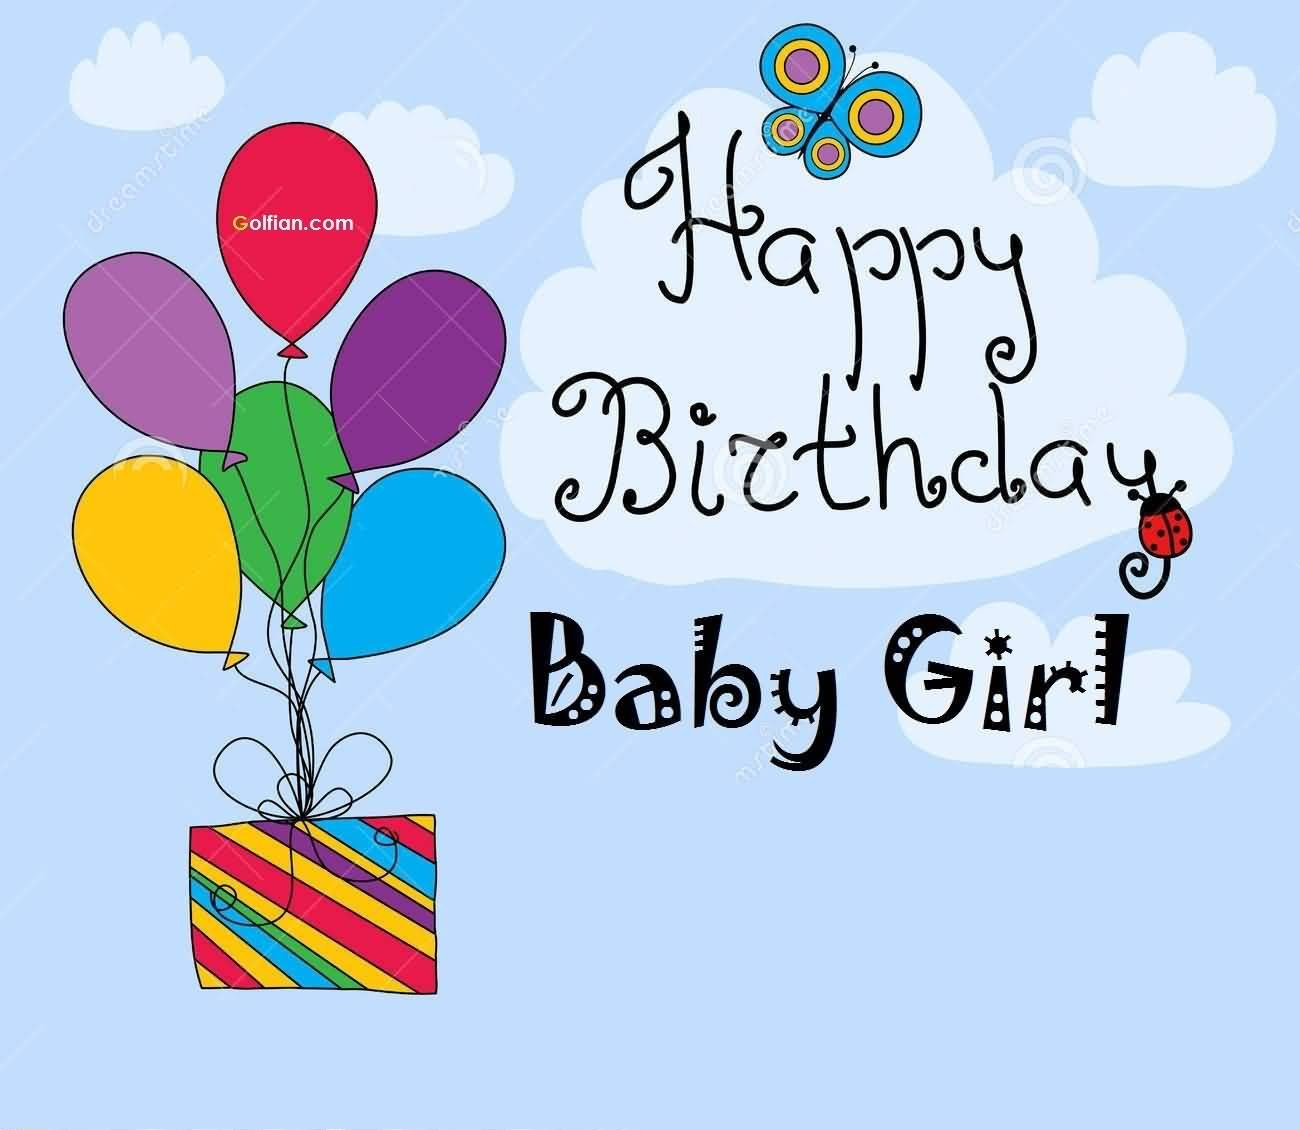 Best ideas about Baby Birthday Wishes . Save or Pin 44 Latest Baby Girl Birthday Wishing Cards Golfian Now.